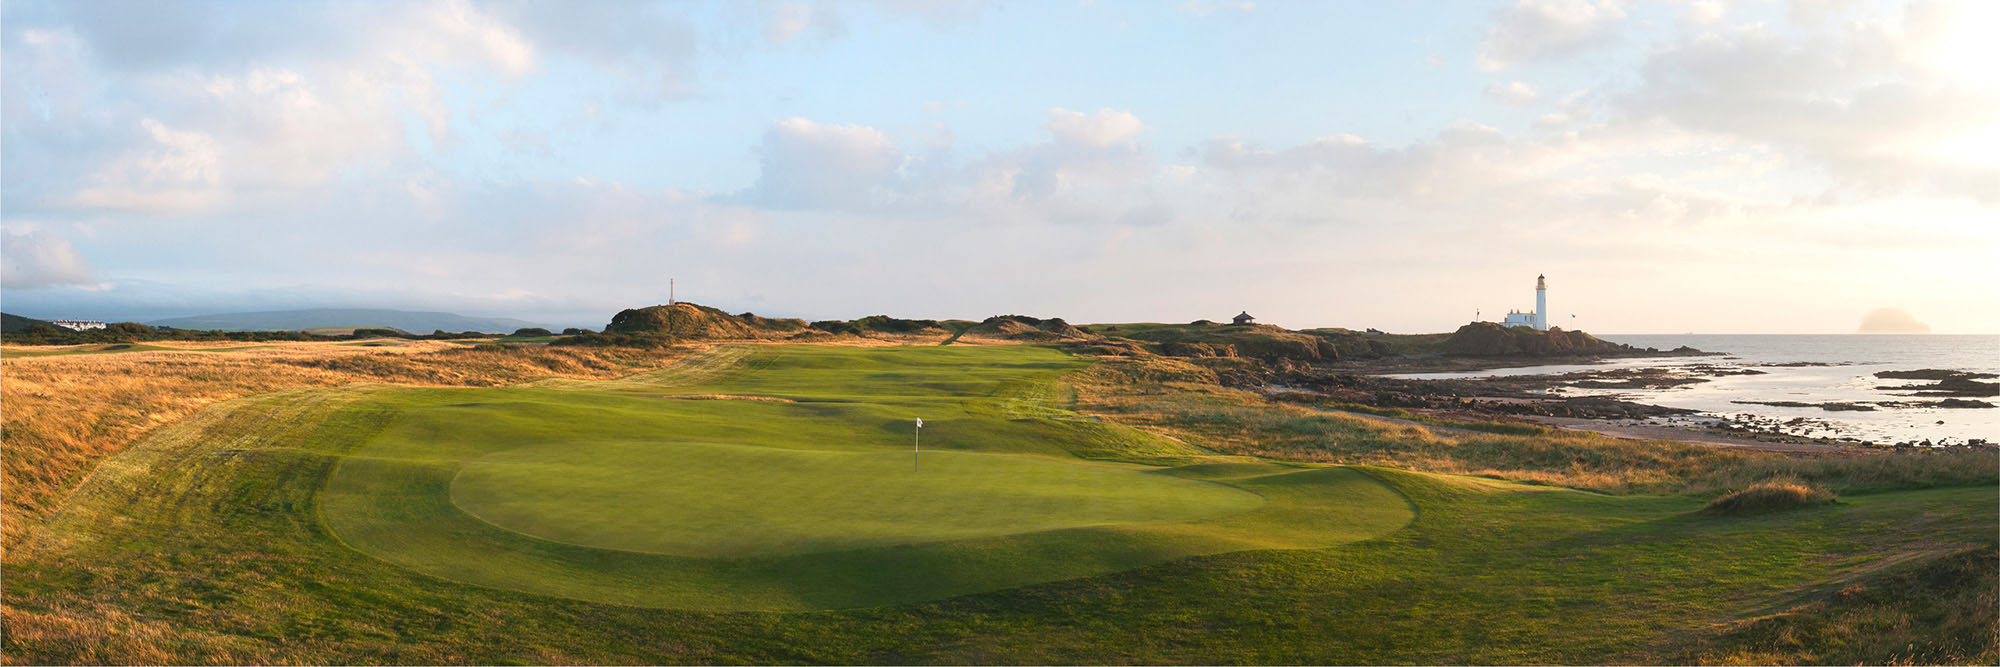 Golf Course Image - Turnberry Ailsa No. 10